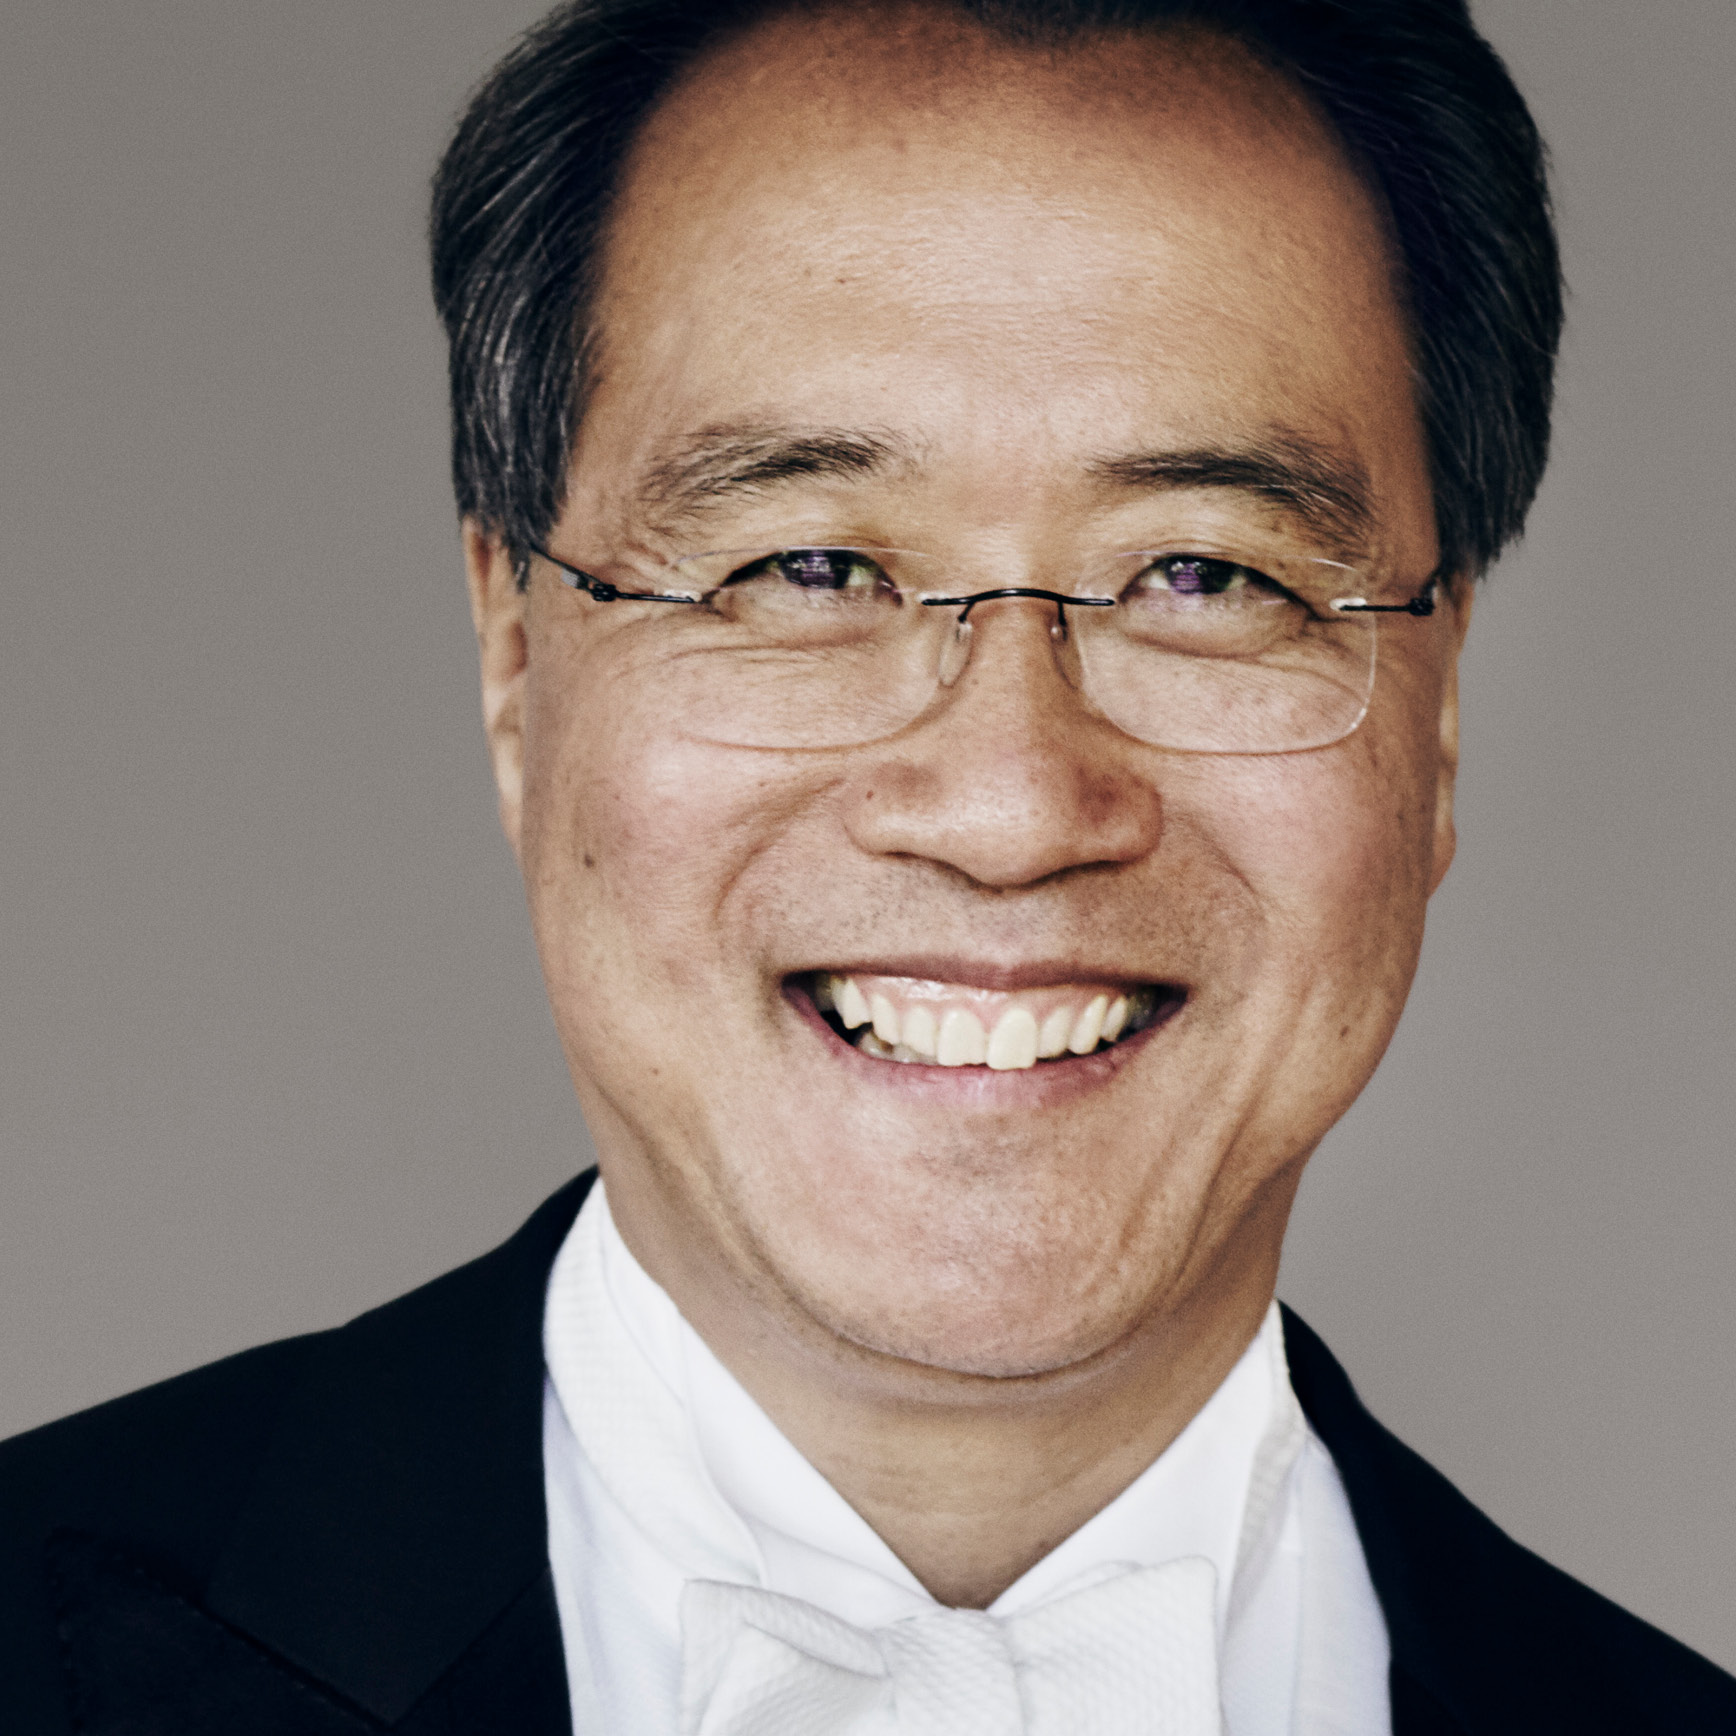 Close up photo of Yo-Yo Ma smiling